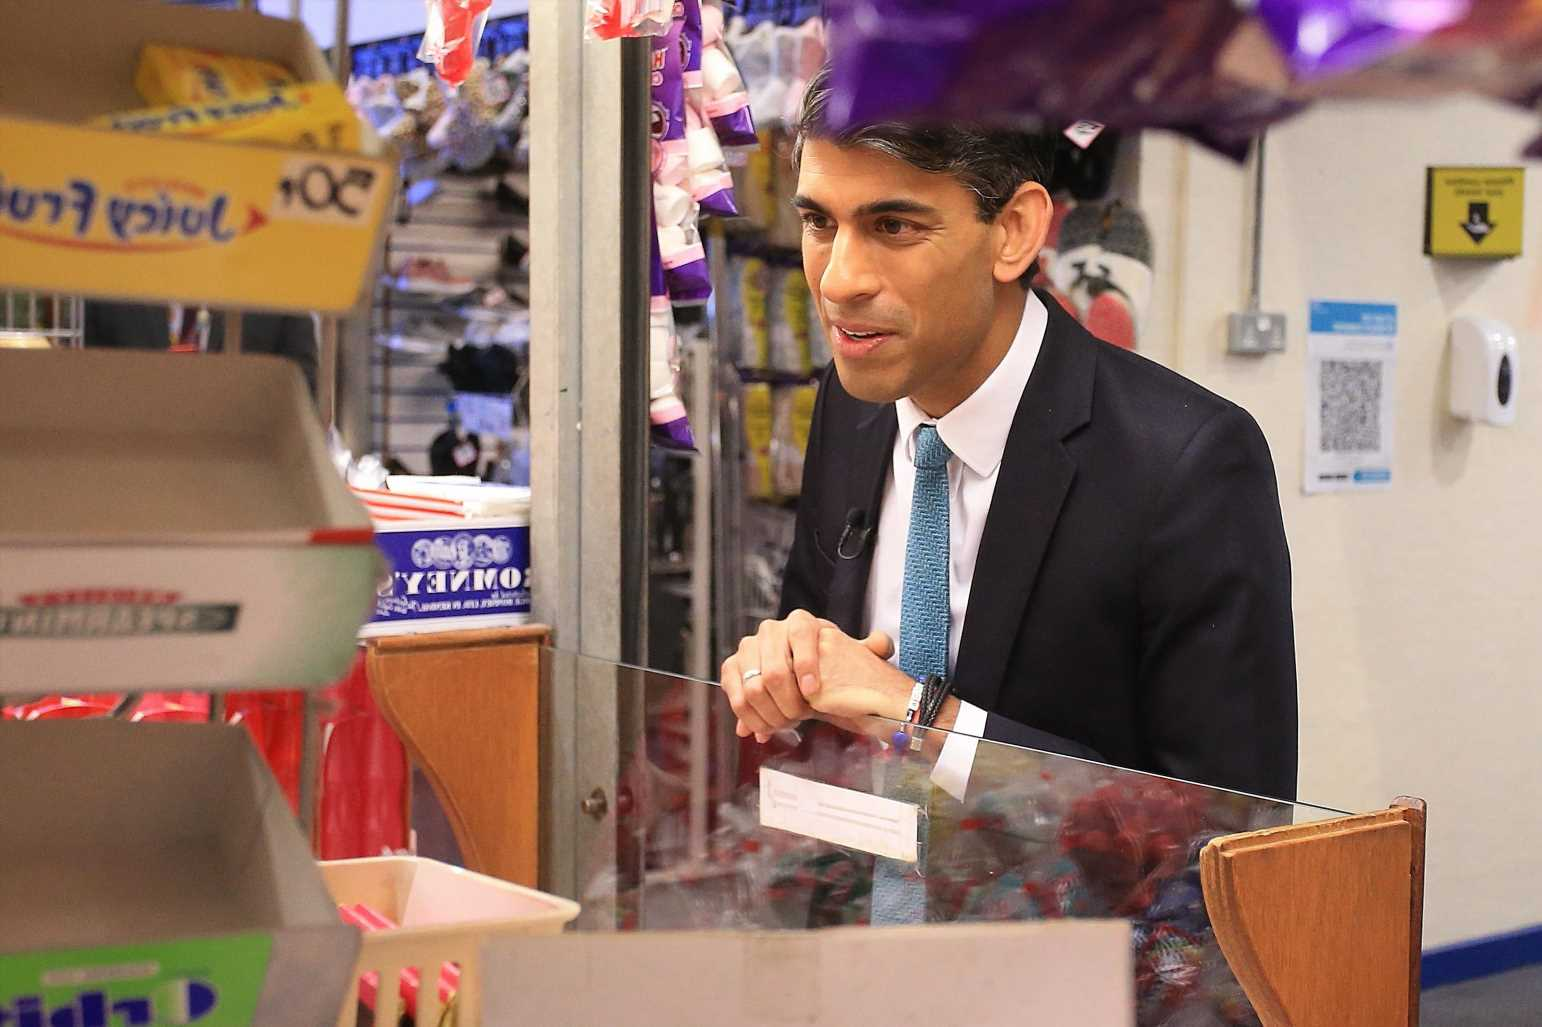 Hard-working families face £3,000 more tax to pay for Rishi Sunak's spending spree Budget